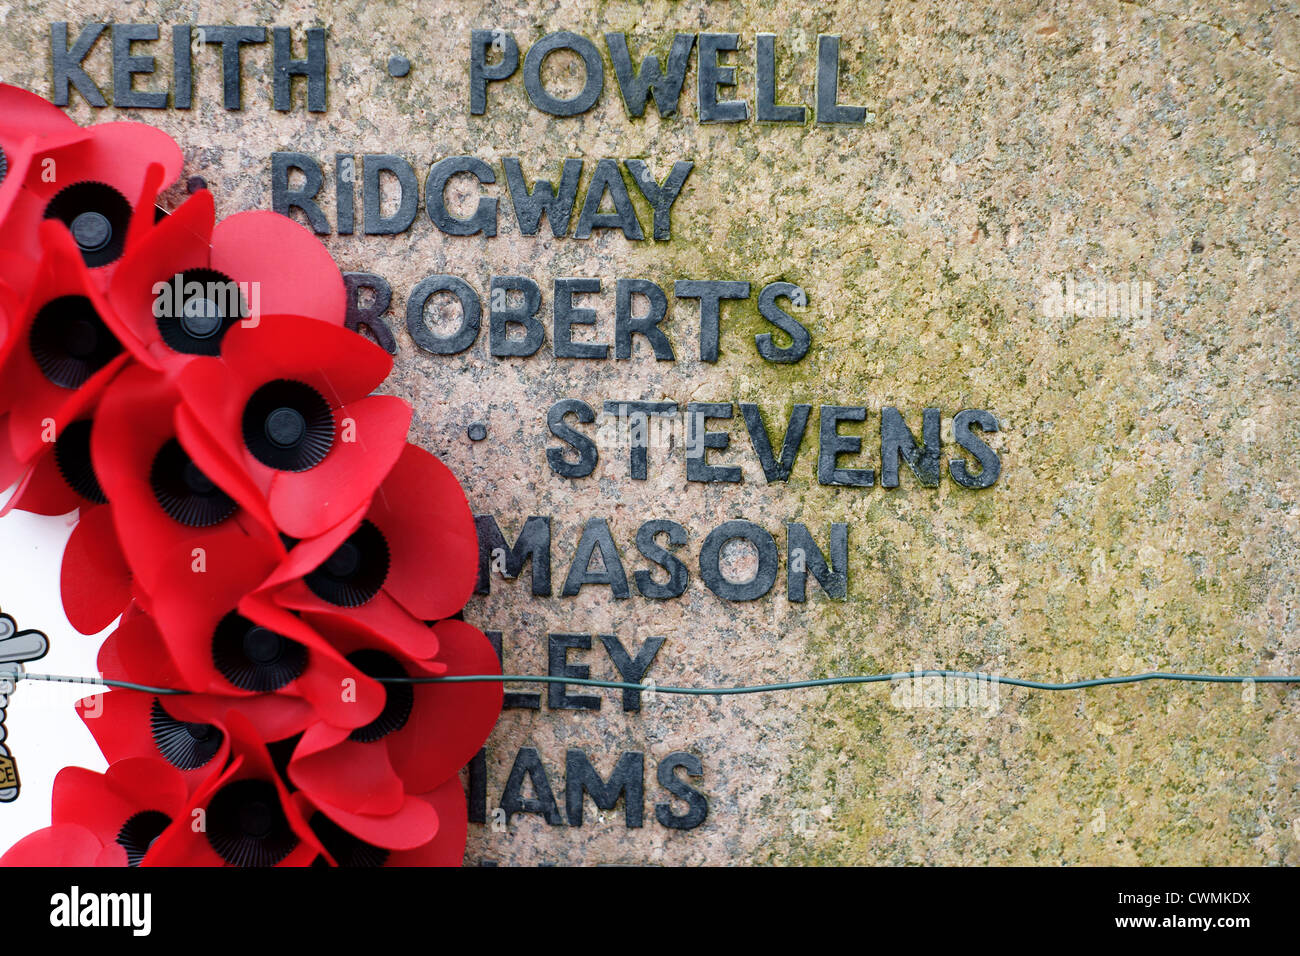 Poppy wreath on a war memorial to commemorate fallen servicemen in past conflicts - Stock Image